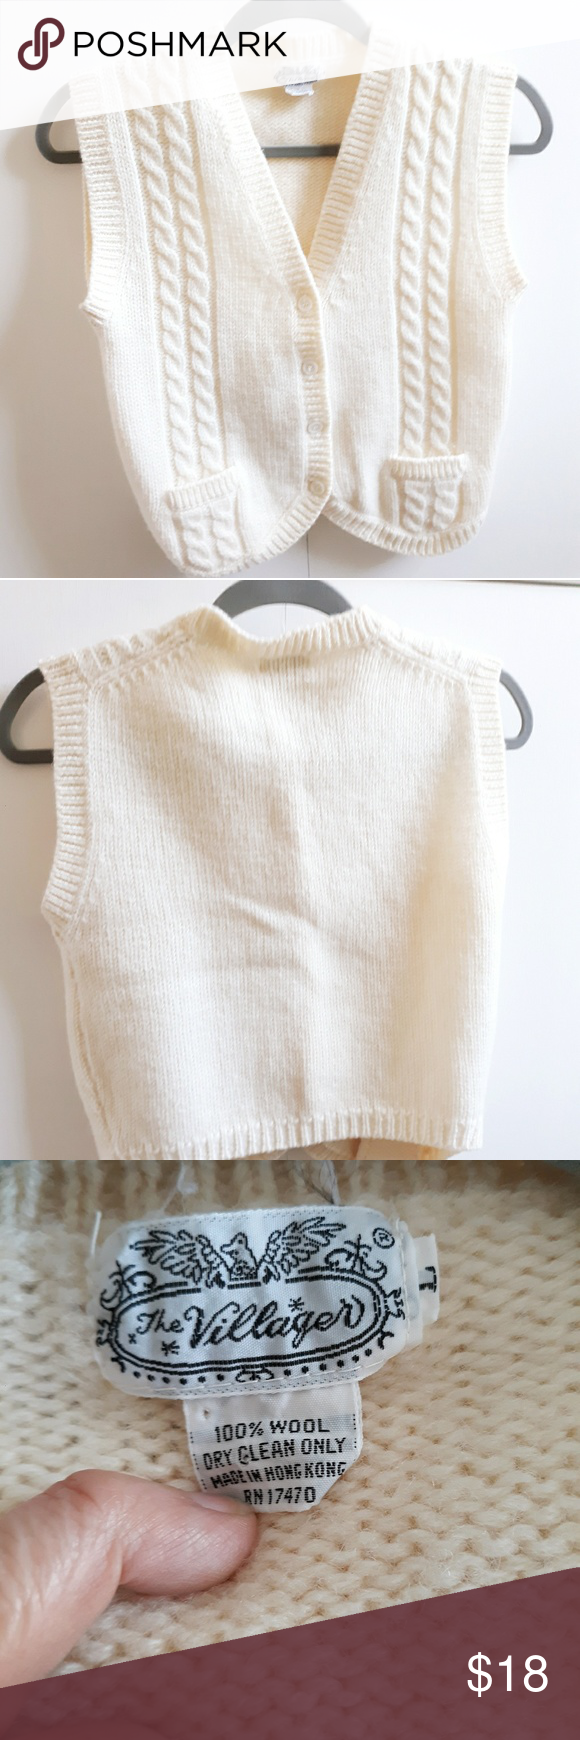 Vintage The Villager Cream Wool Knit Sweater Vest Knitted Sweaters Sweater Vest Cable Knit Sweaters